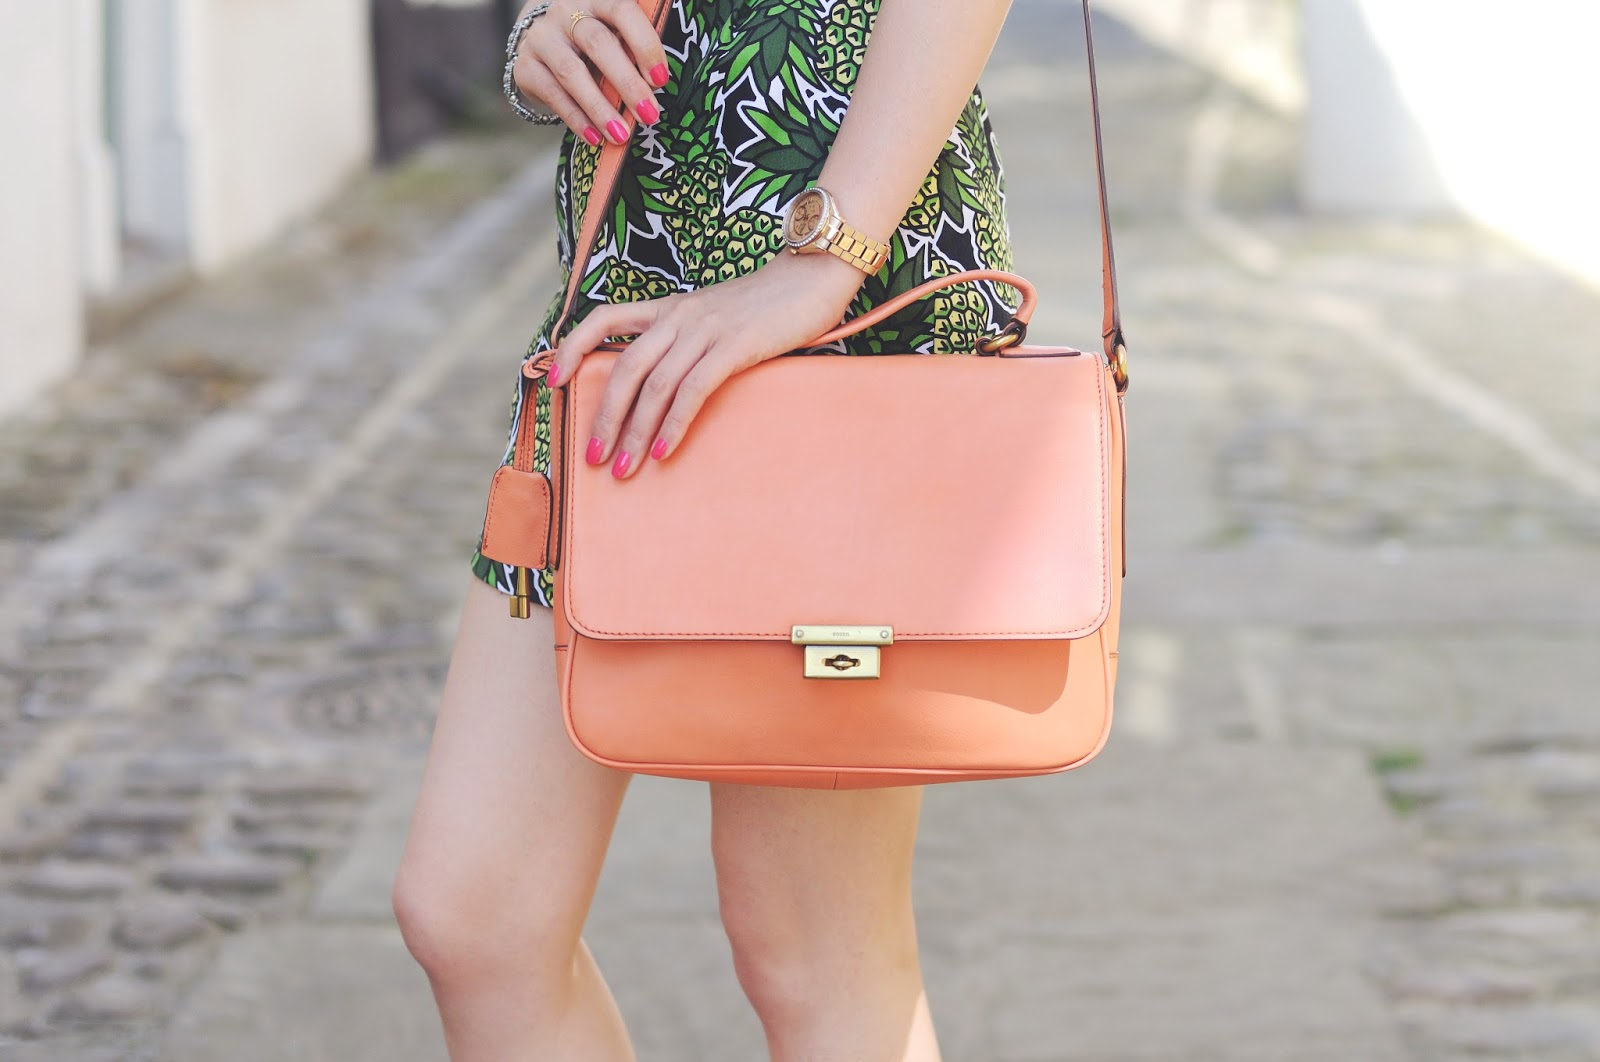 what to wear with orange handbag, how to style orange handbag